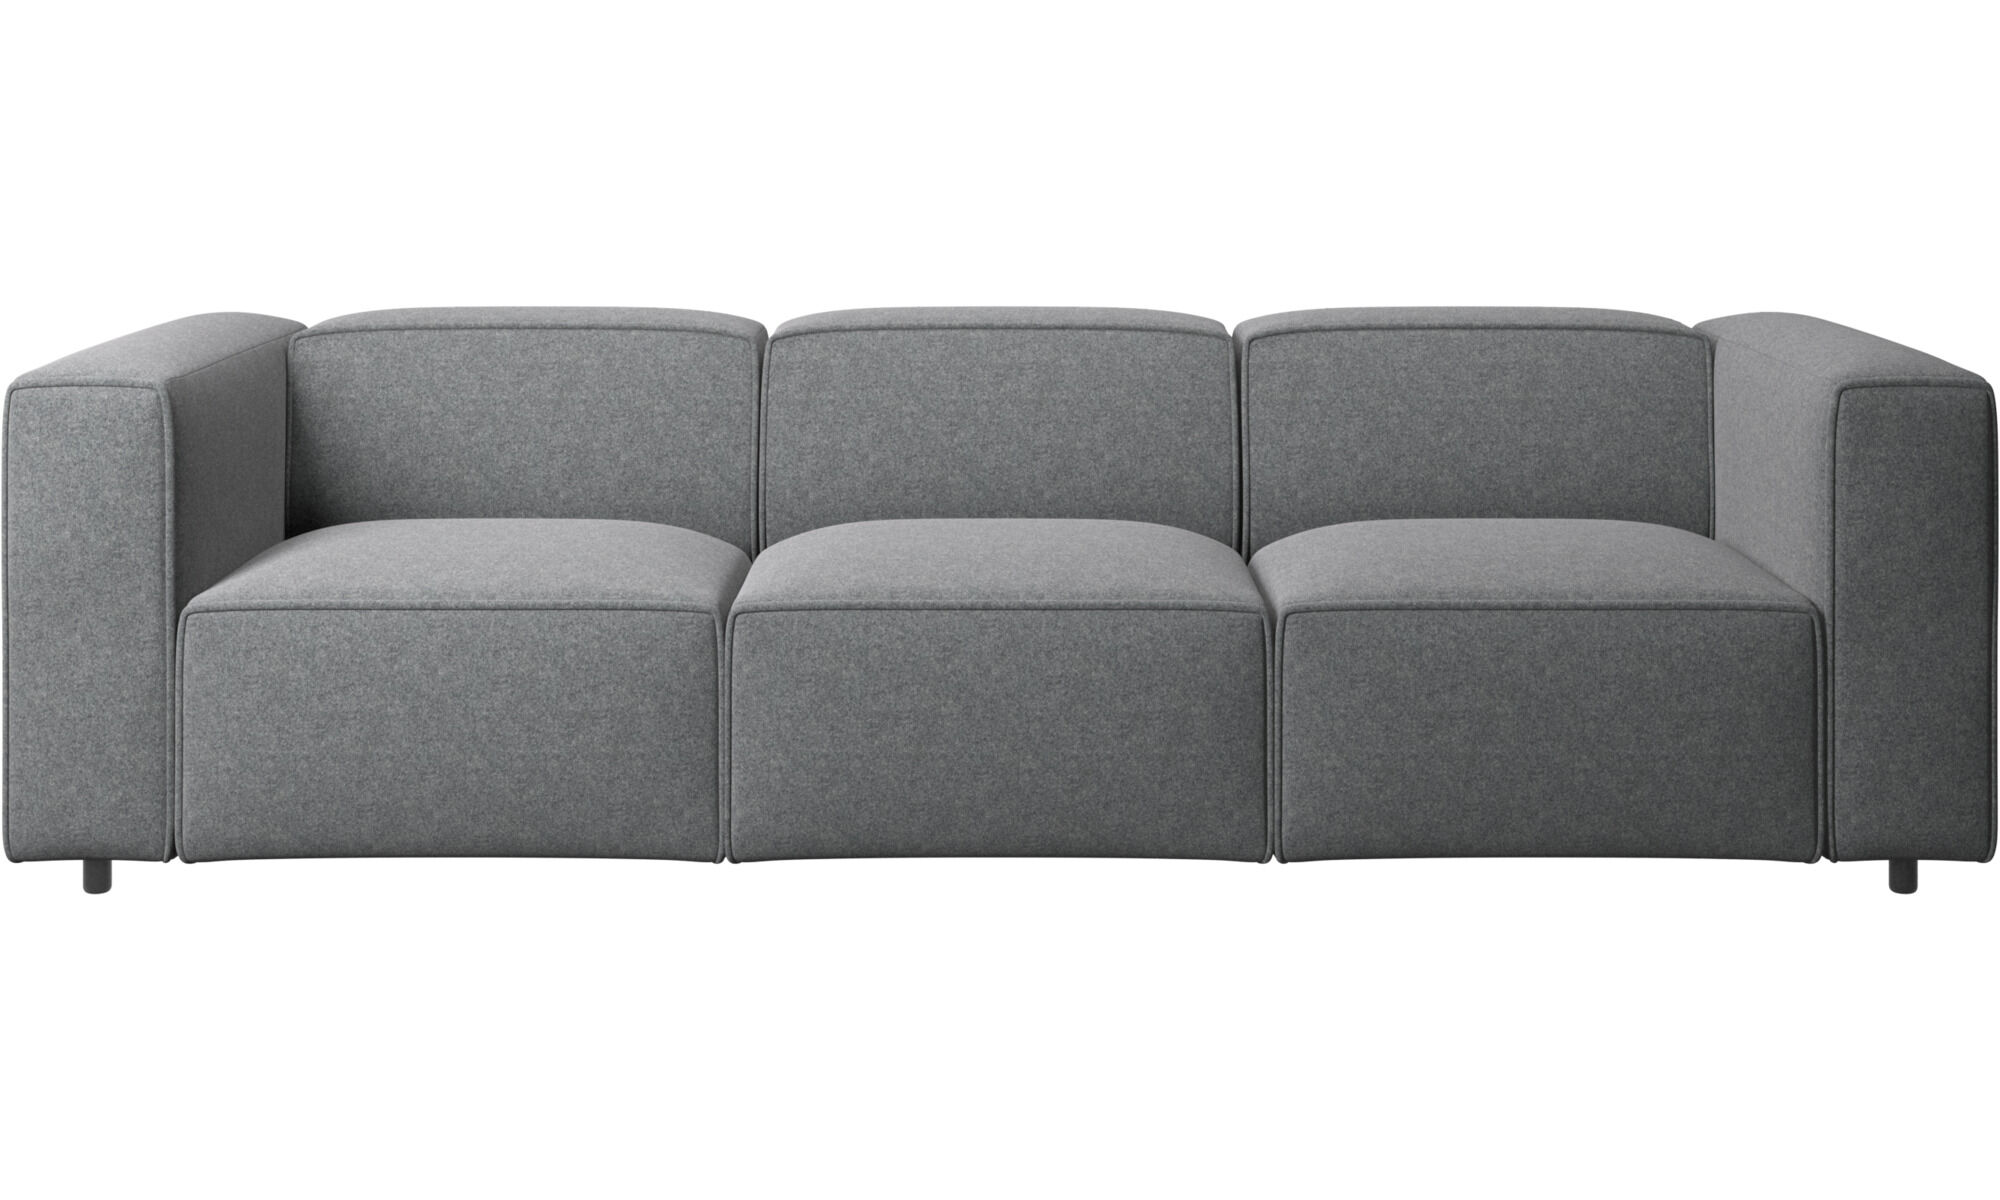 3 Seater Sofas   Carmo Sofa   Gray   Fabric